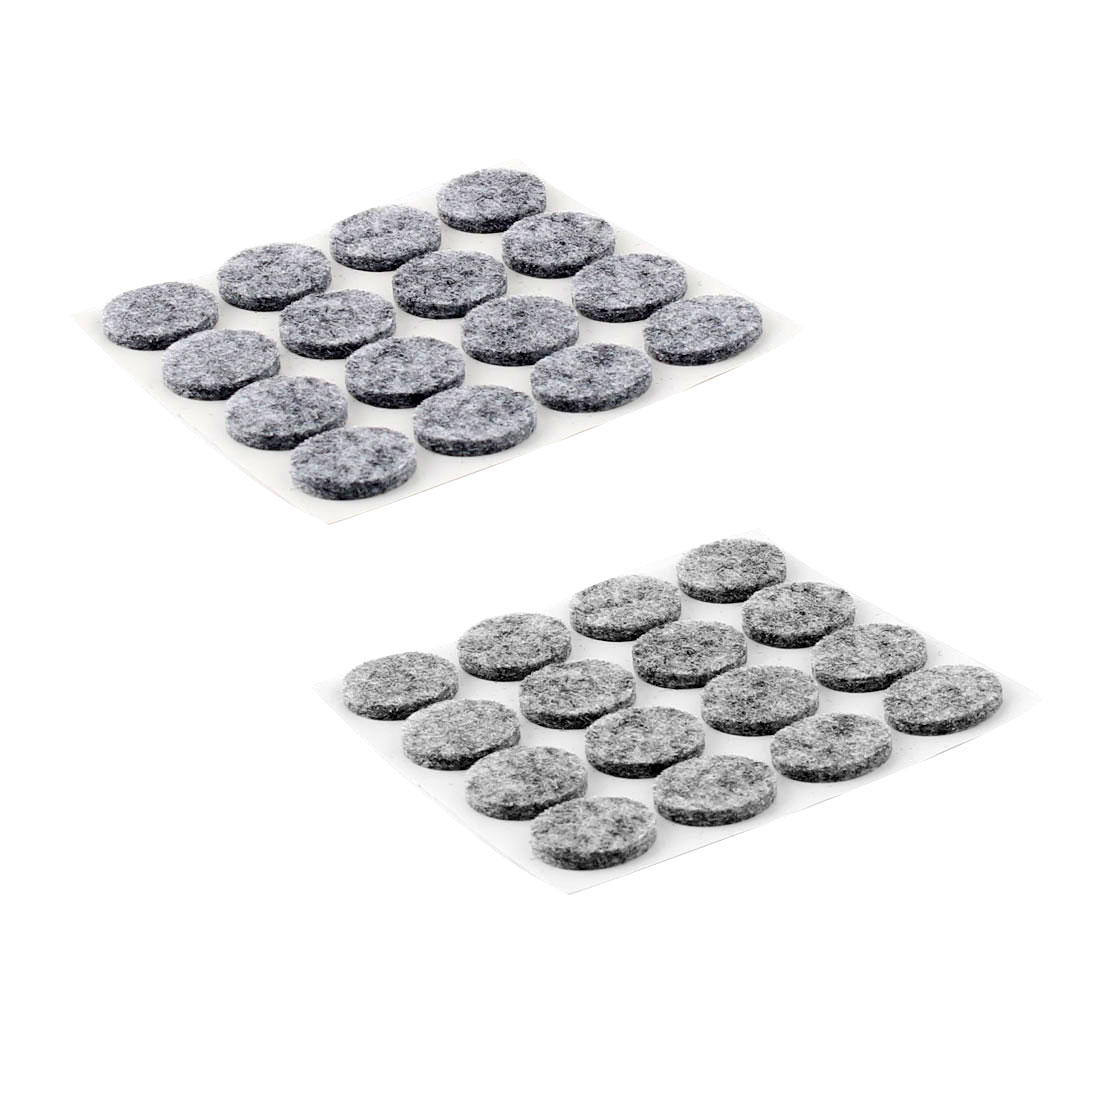 Houseware Self Adhesive Surface Protection Furniture Felt Pads Mats Gray 18mm Dia 32pcs